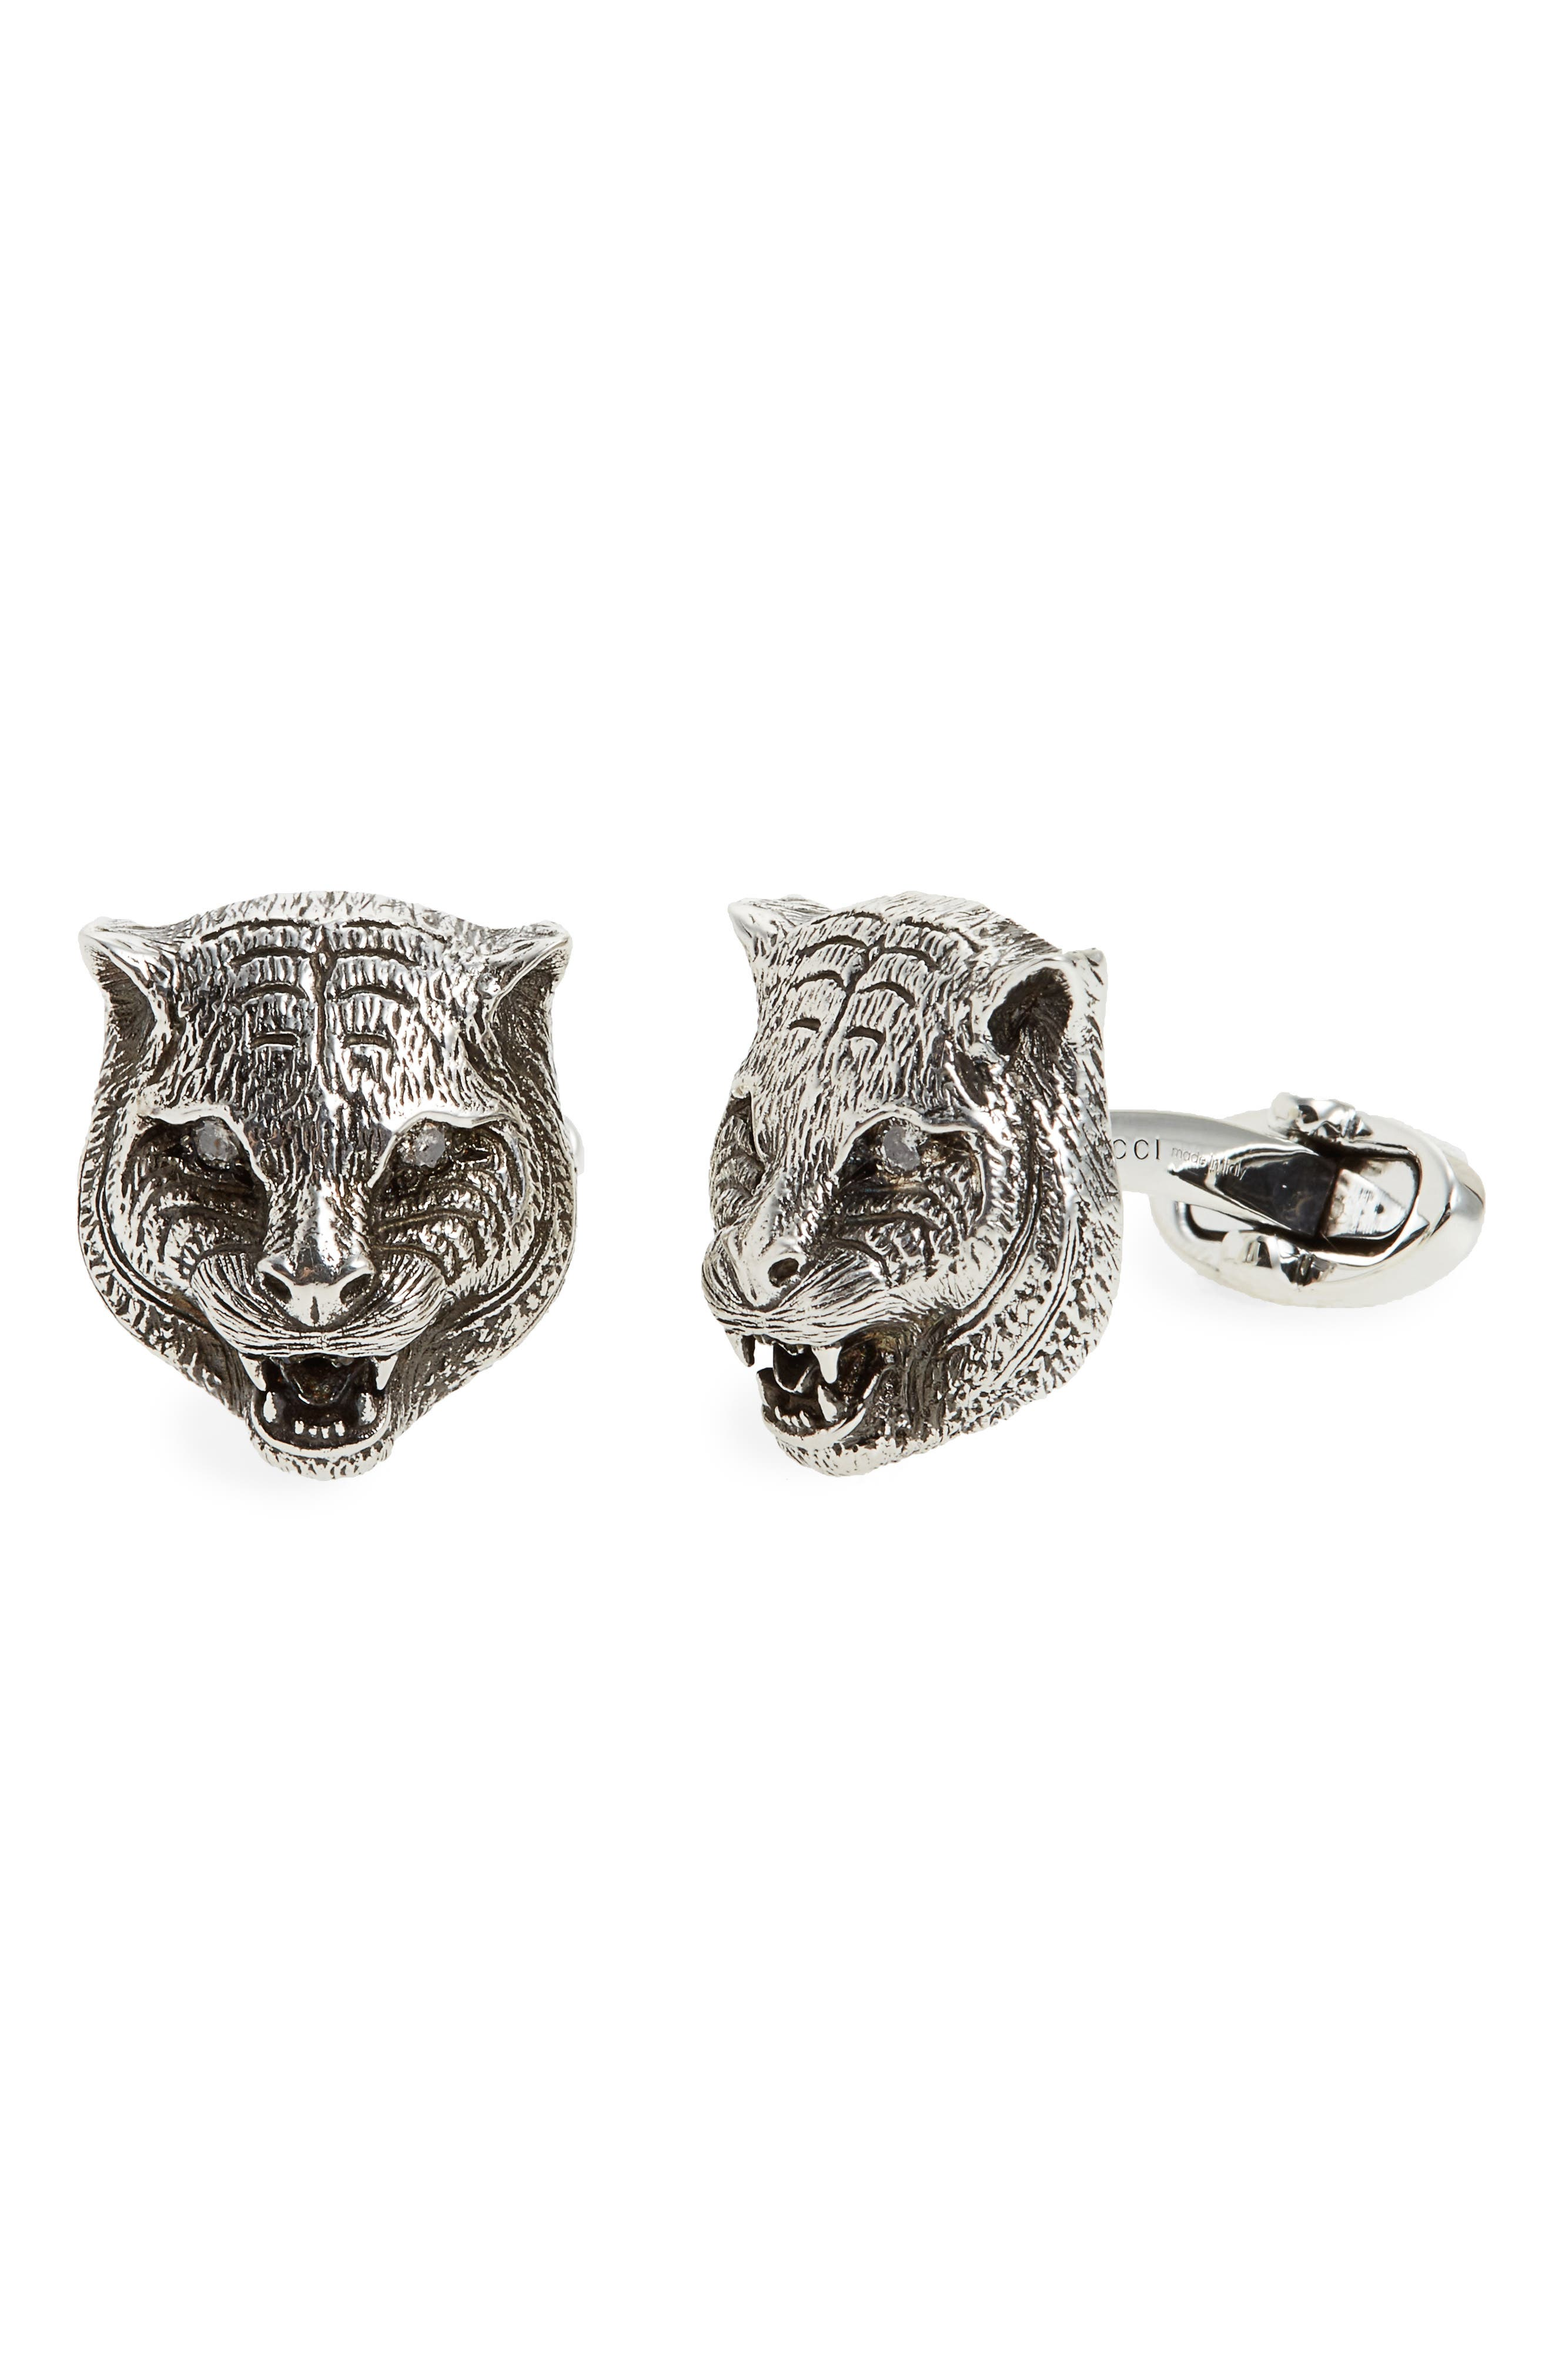 Alternate Image 1 Selected - Gucci Garden Wolf Cuff Links